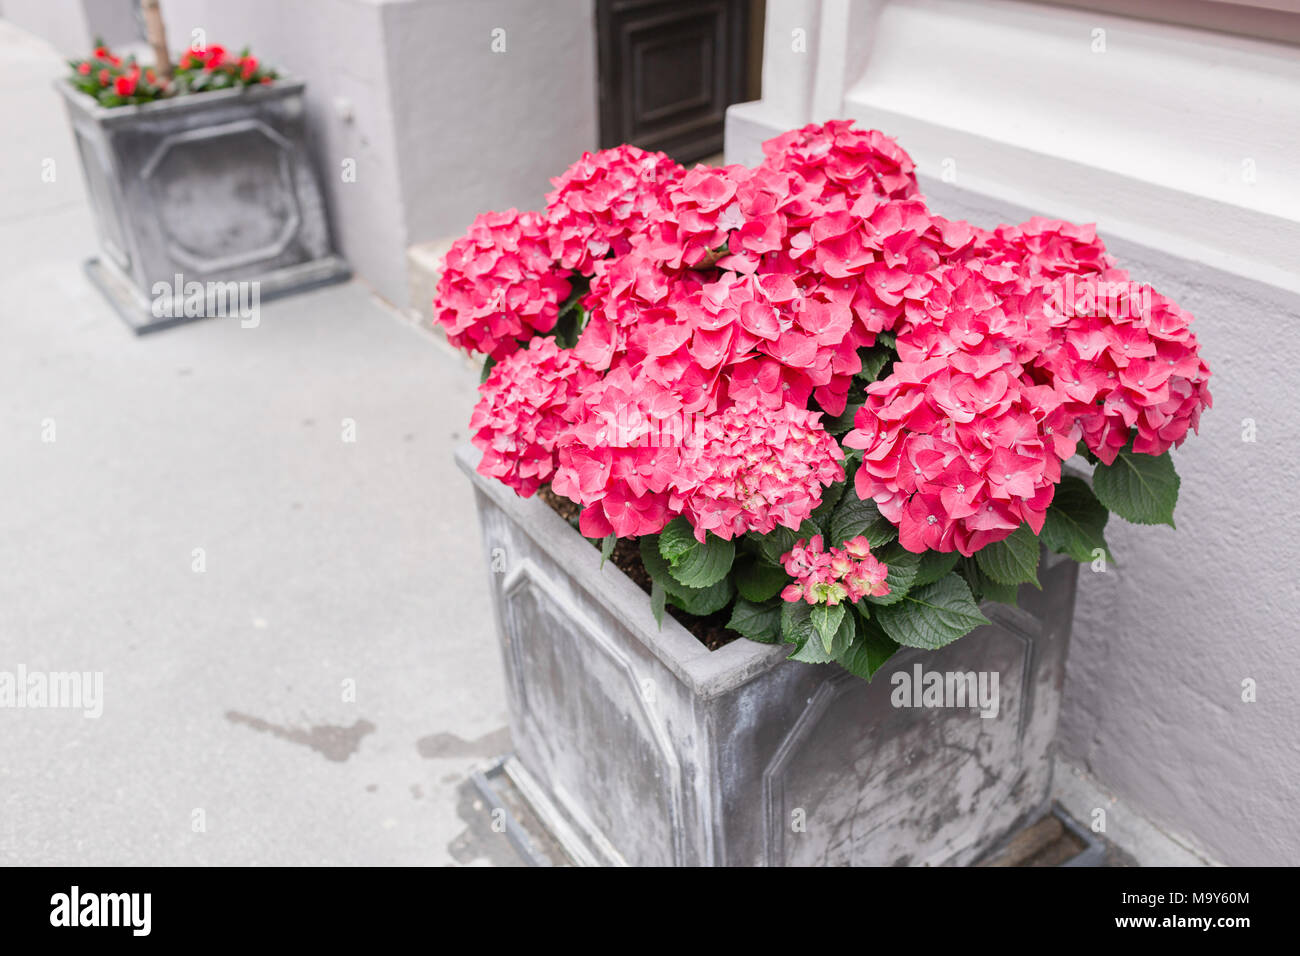 Pink Hydrangea In Pots Outdoor On The Summer Patio Small Townhouse